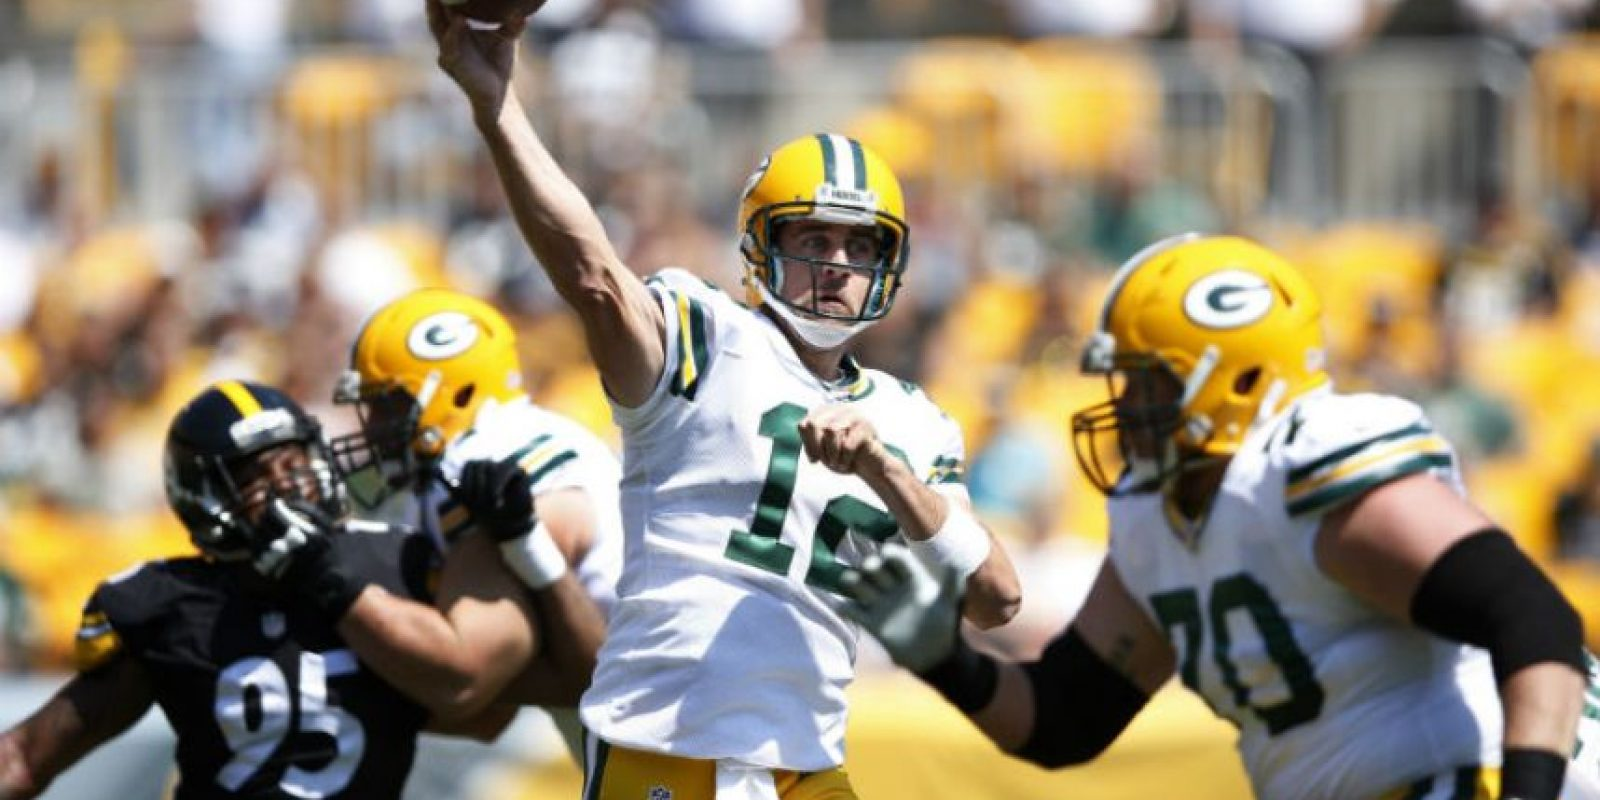 Green Bay Packers Foto:Getty Images